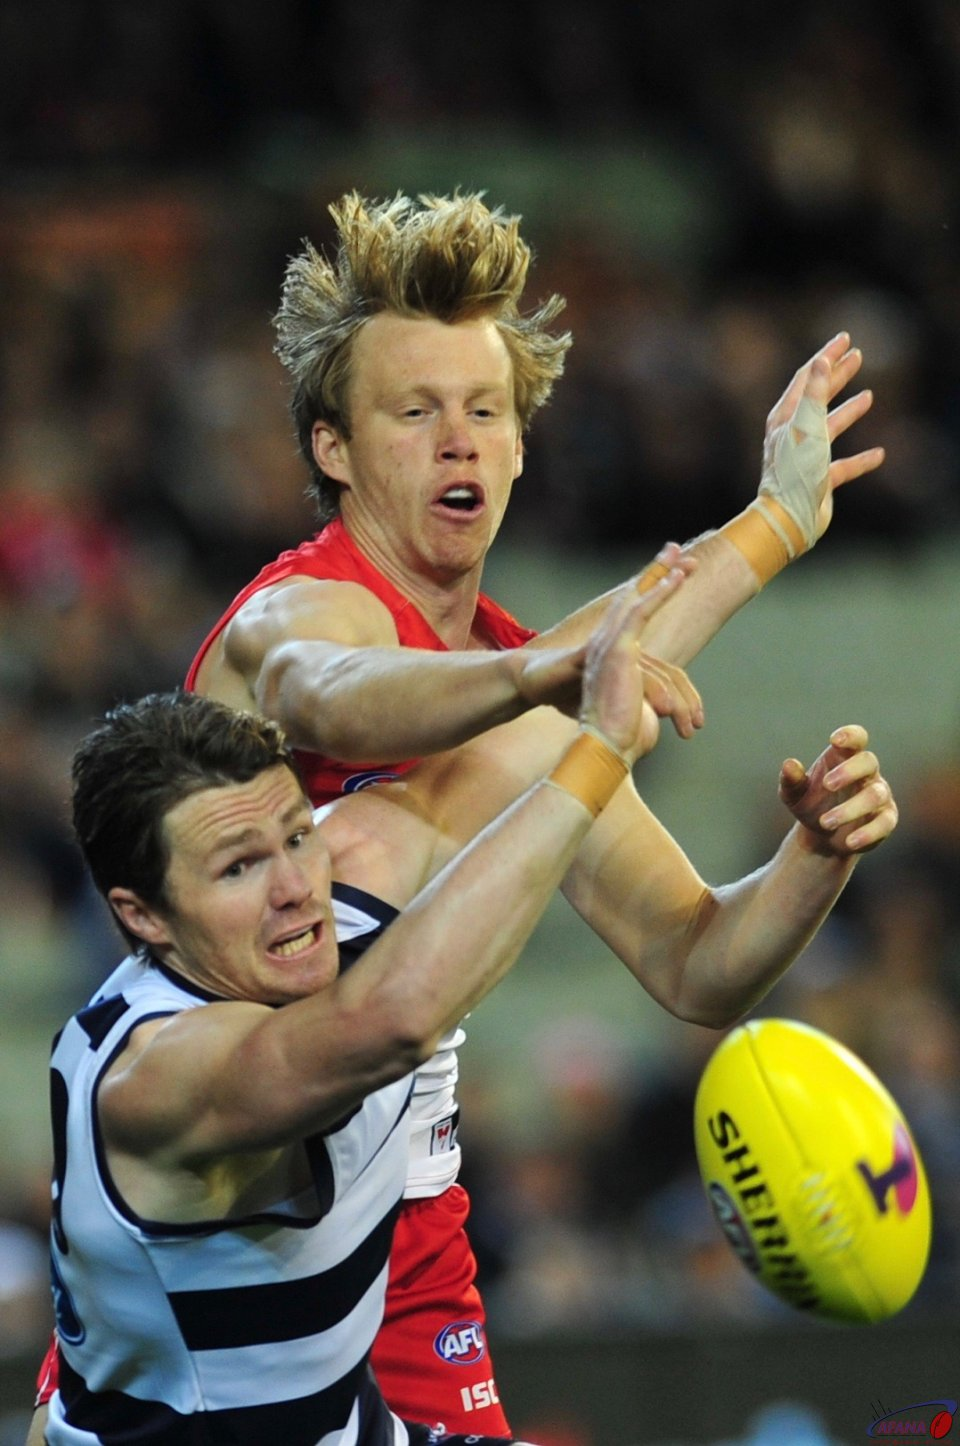 Dangerfield playing full forward shocks Swans defence